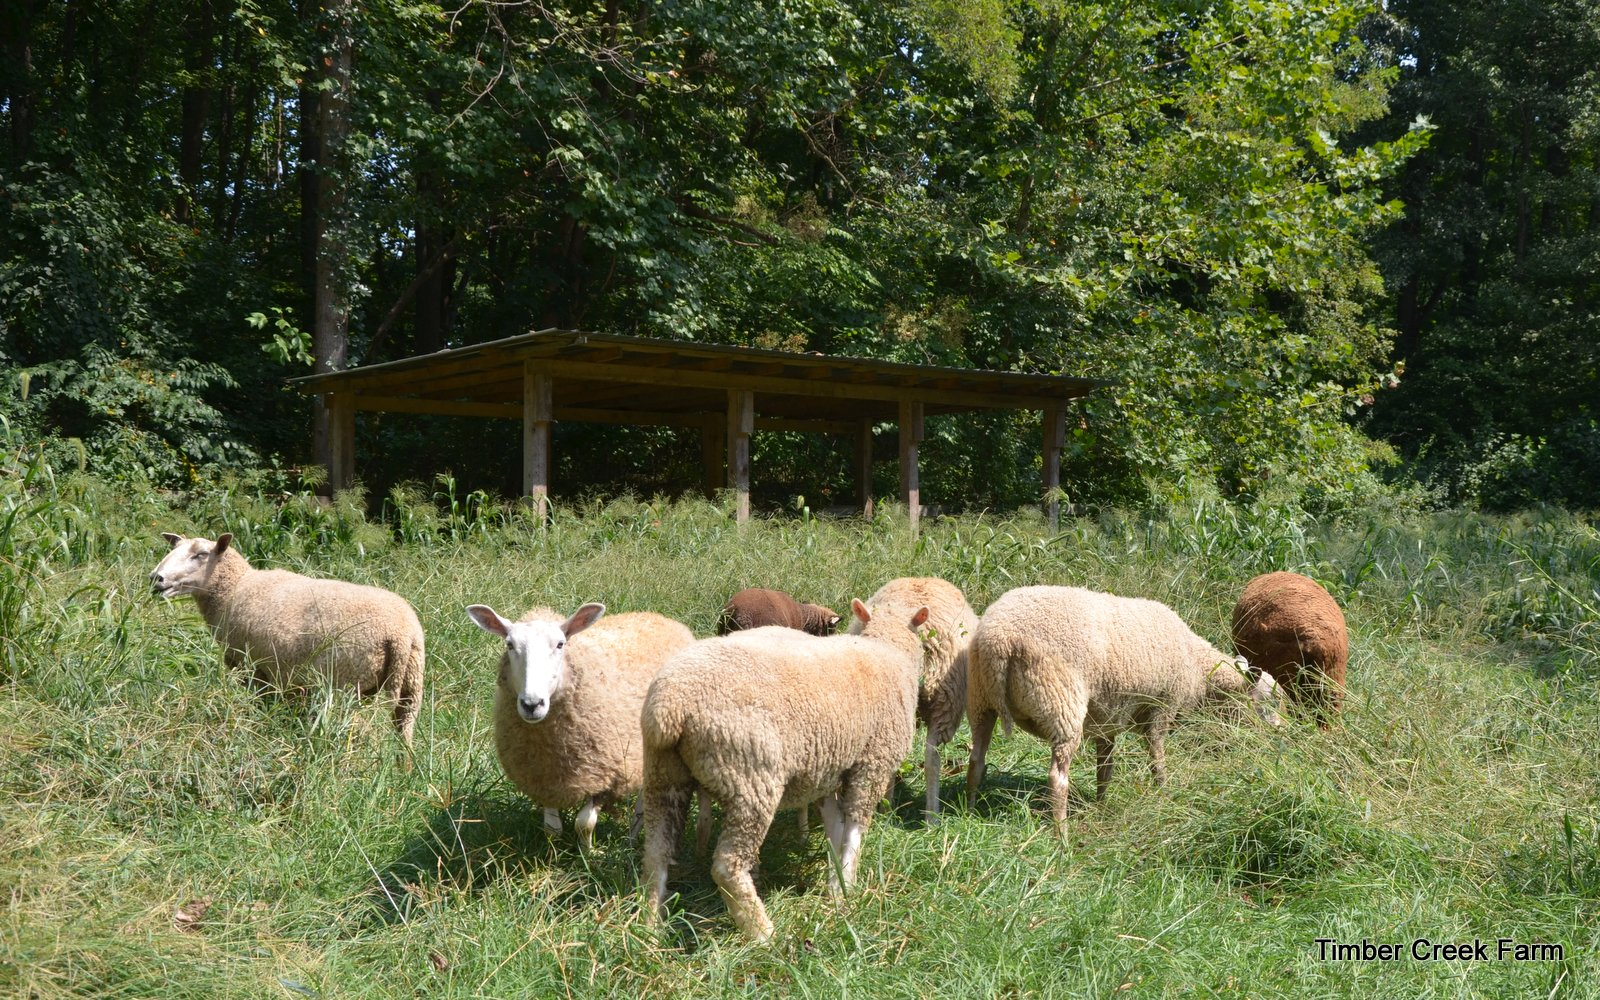 Sheep Breeds for Fiber, Meat, or Dairy - Countryside